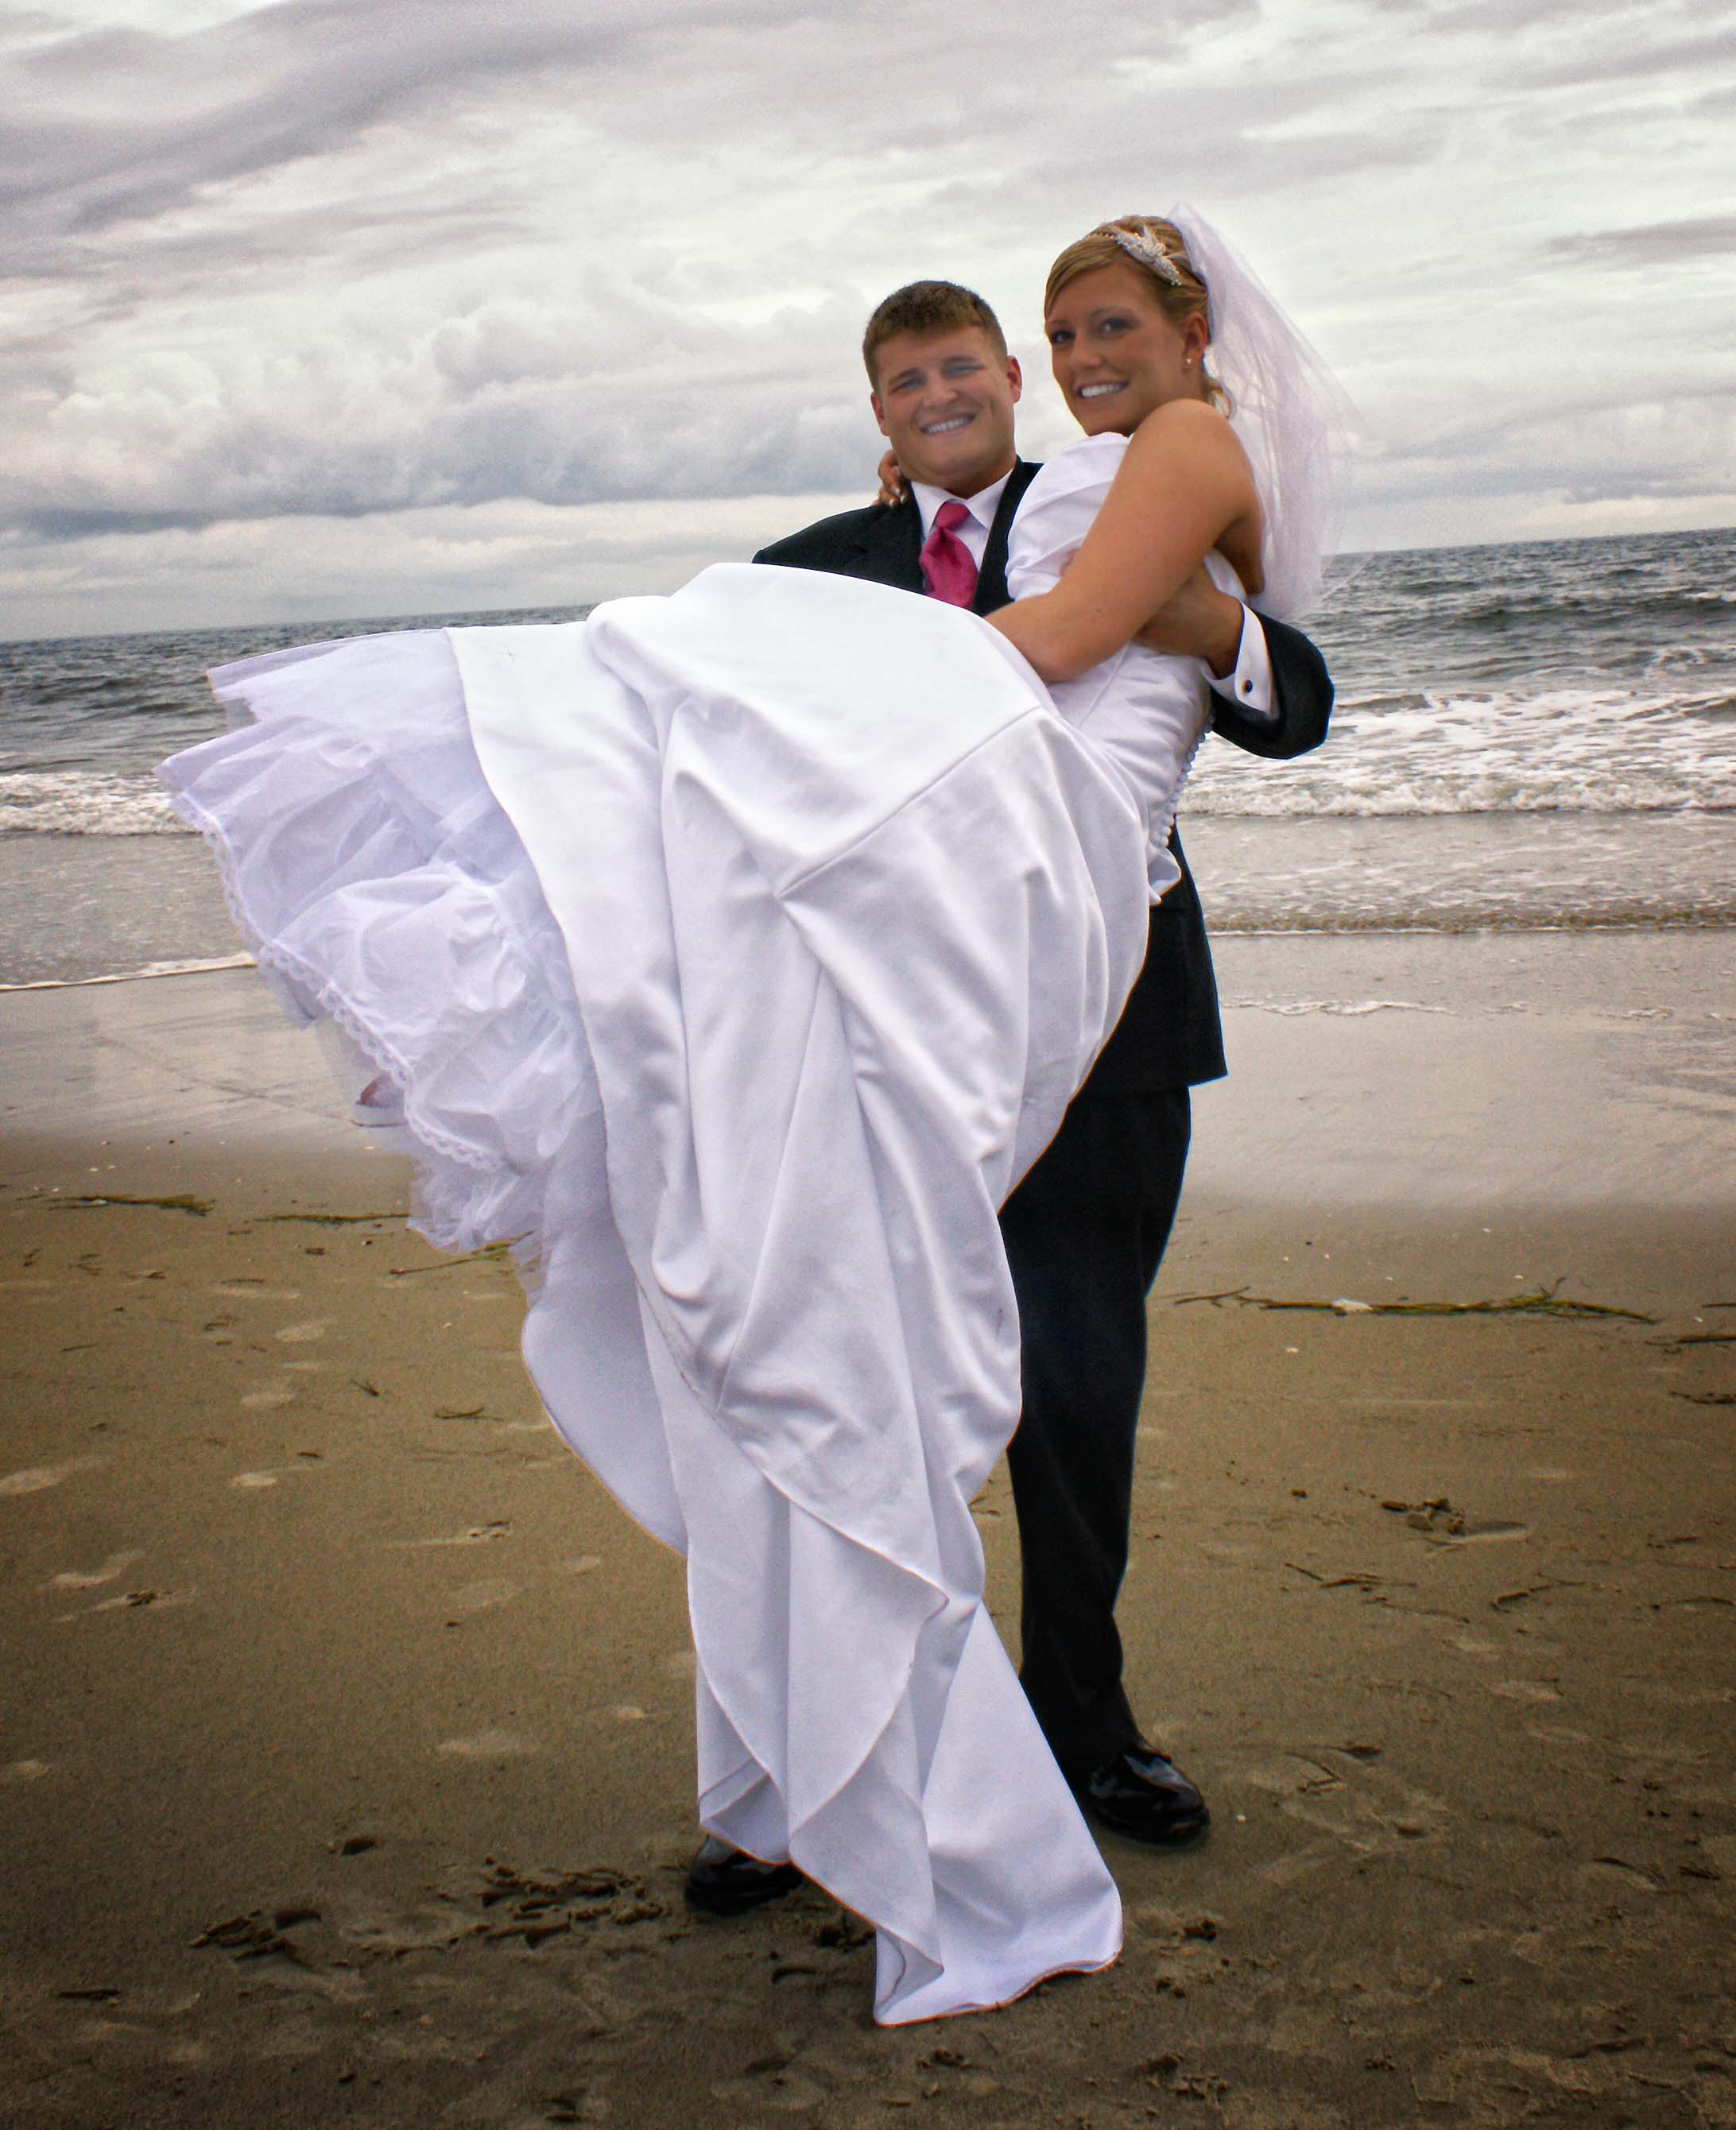 Virginia beach bride